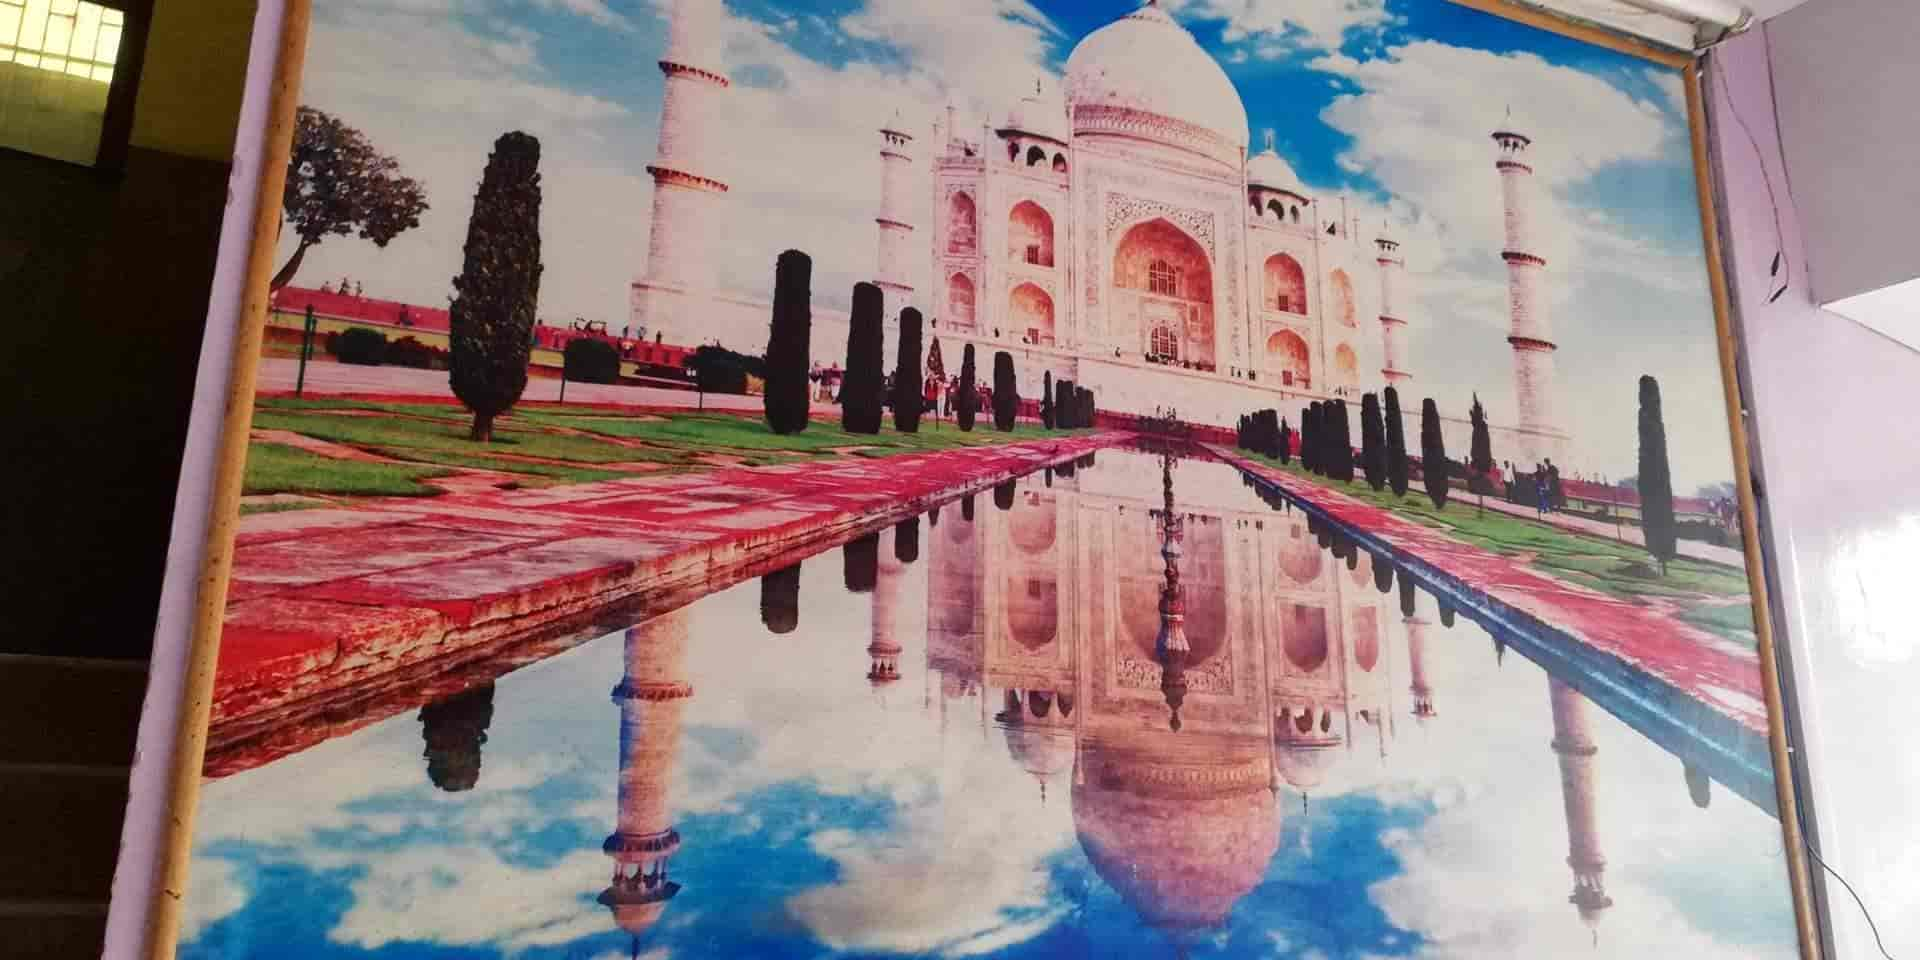 Hotel Diamond Photos, , Agra- Pictures & Images Gallery - Justdial